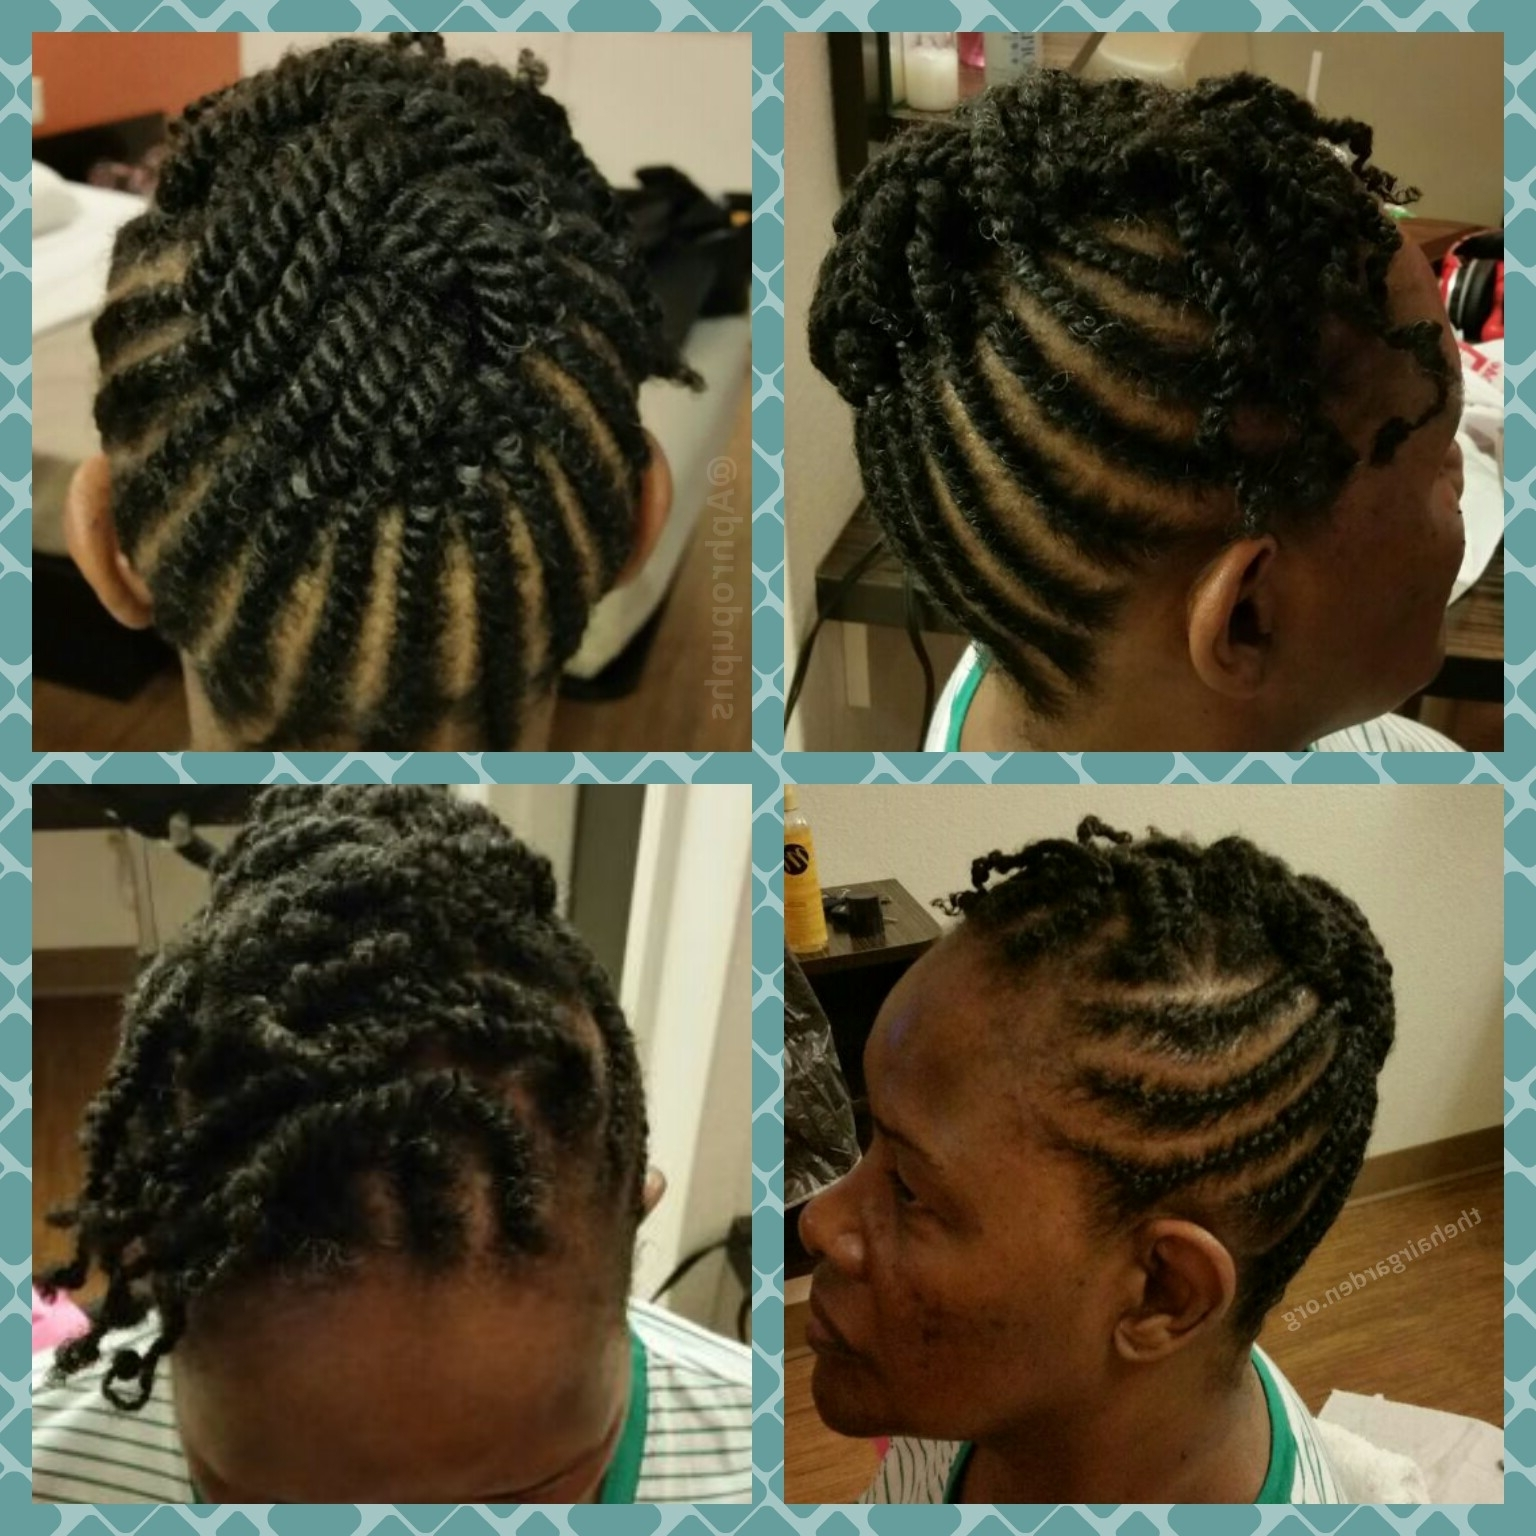 Flat Twist Updo – The Hair Garden – Natural Hair Education With Regard To Flat Twist Updo Hairstyles On Natural Hair (View 10 of 15)